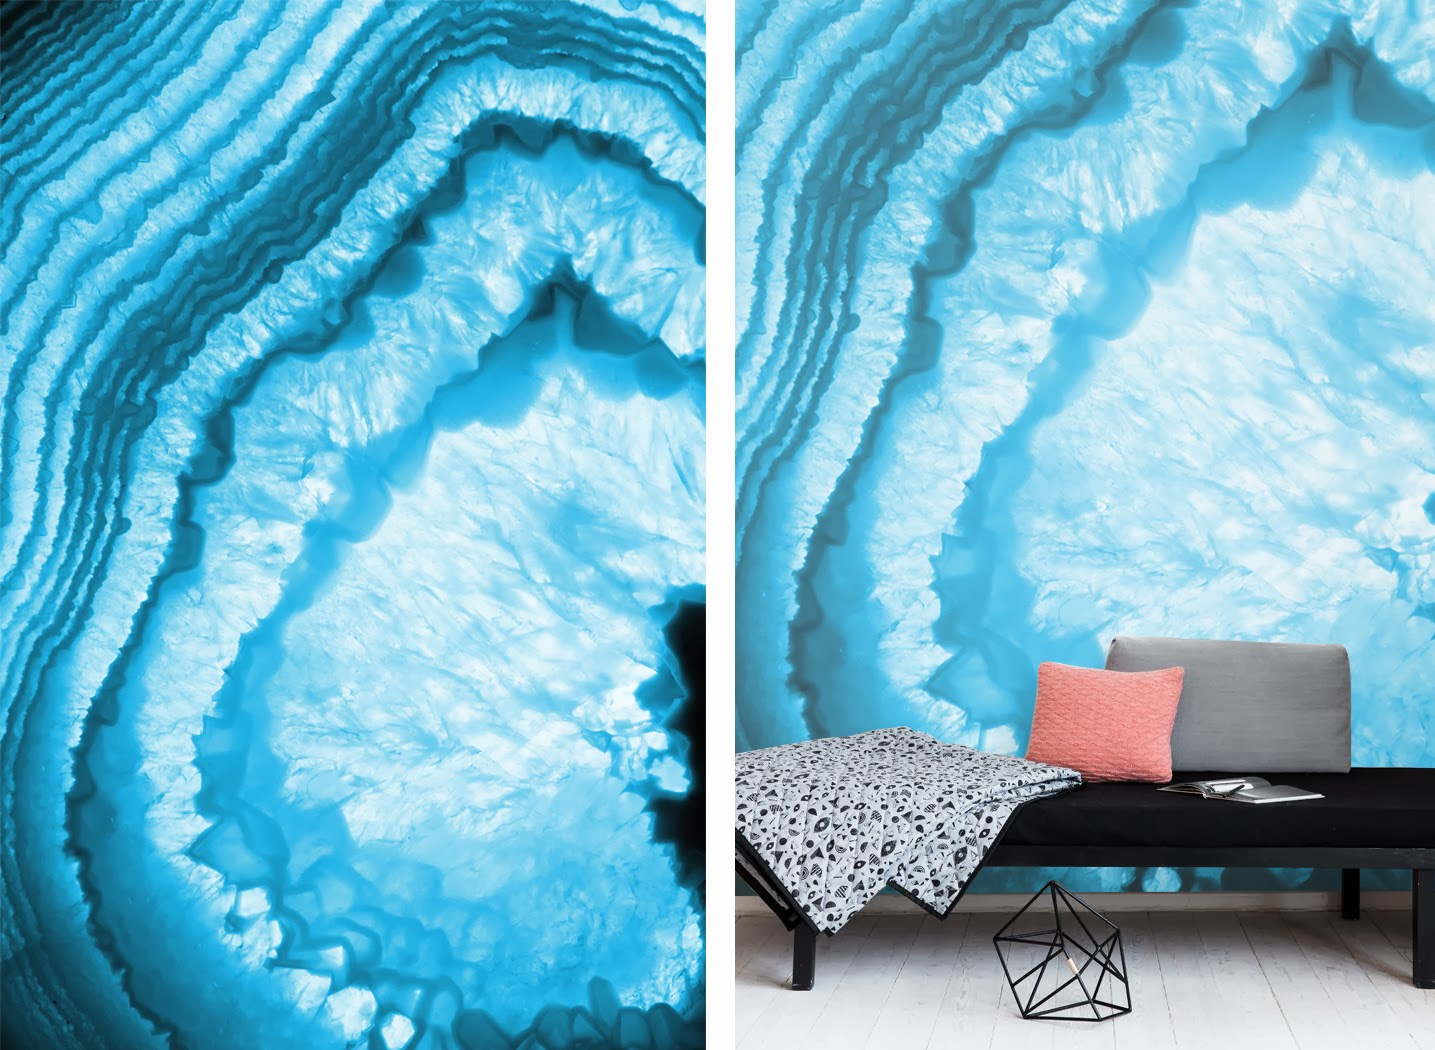 agate wallpaper borders with rocks - photo #32